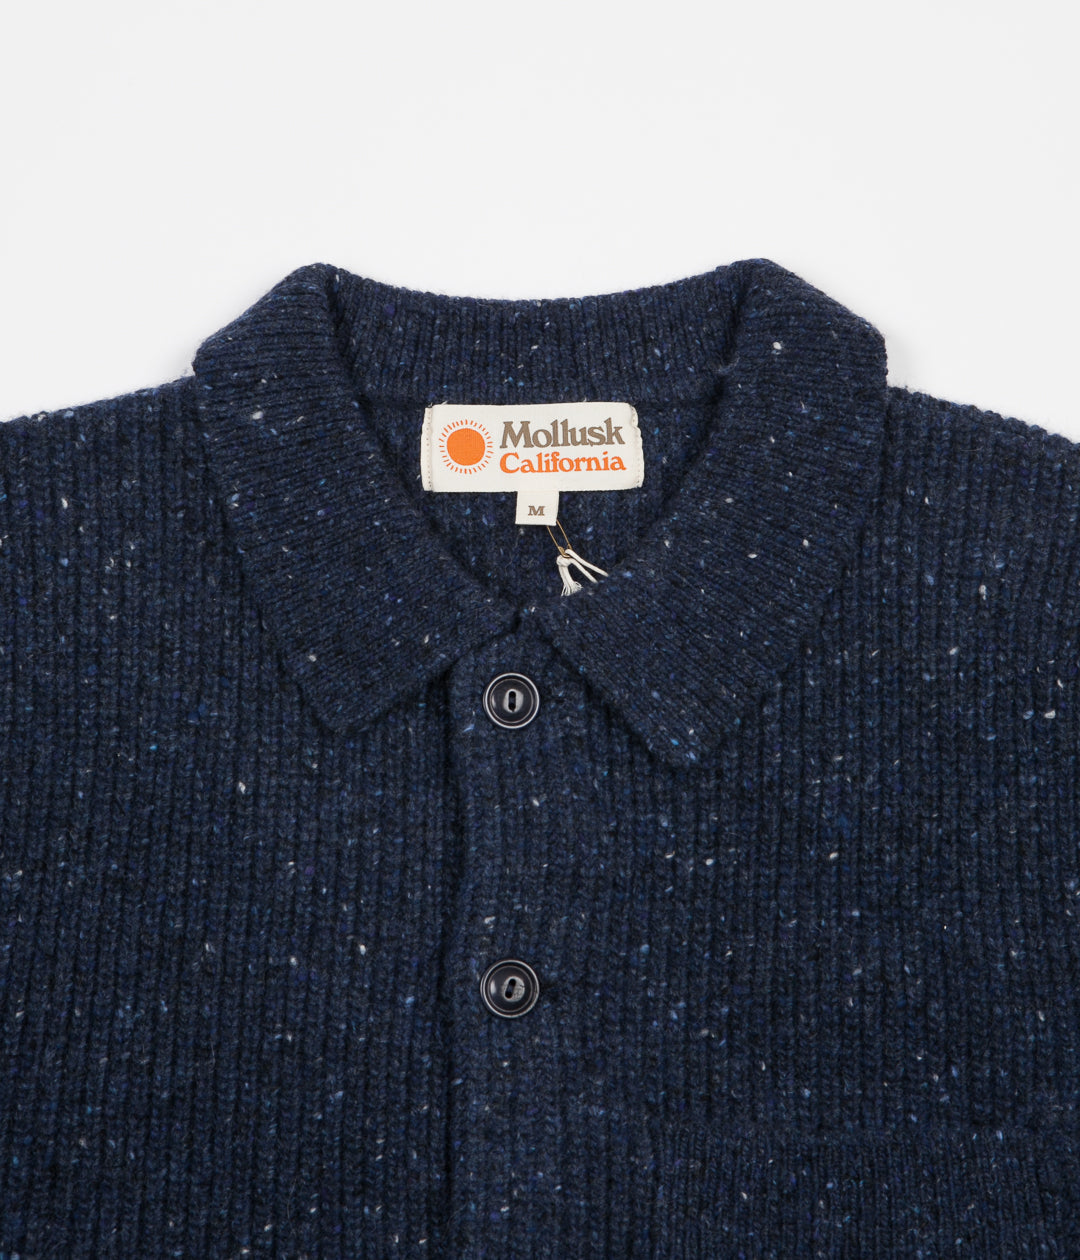 Mollusk Cheever Sweater - Faded Navy